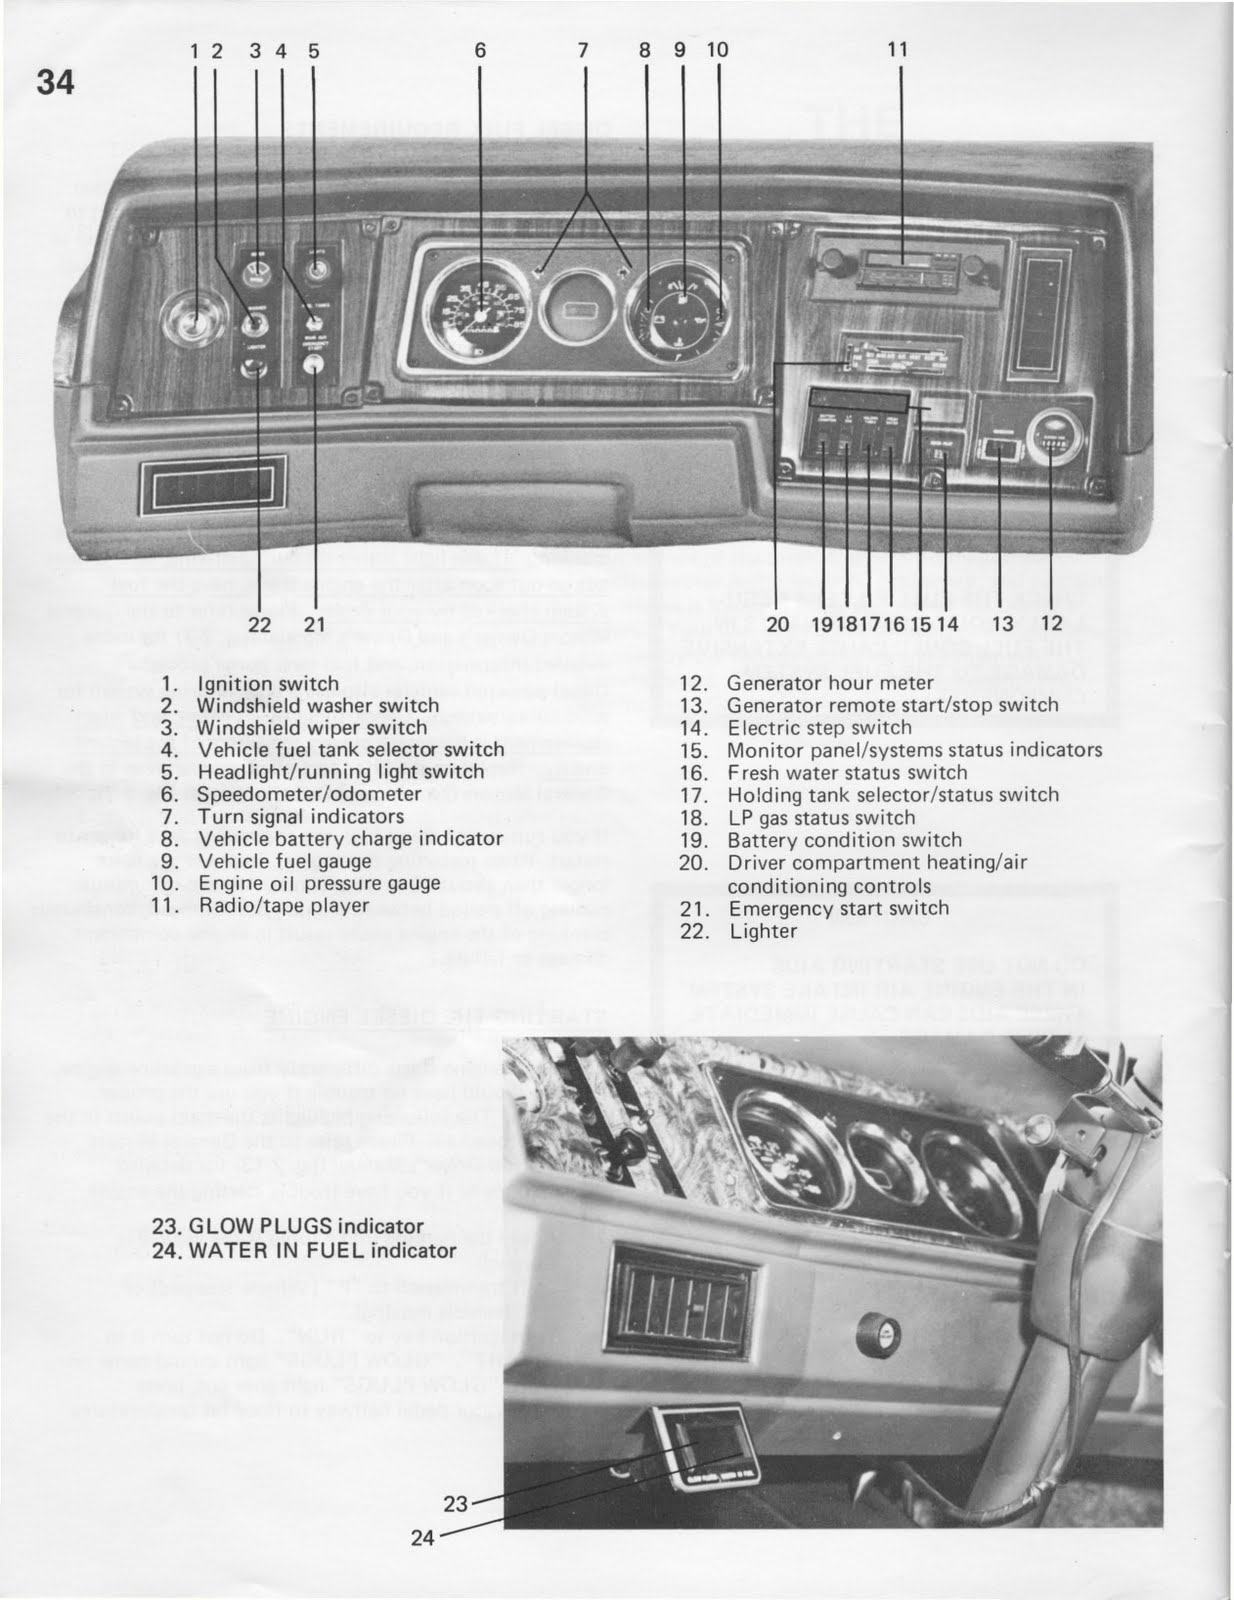 1988 Pace Arrow Electrical Diagram Trusted Wiring 1983 Fleetwood Owners Manuals Interior